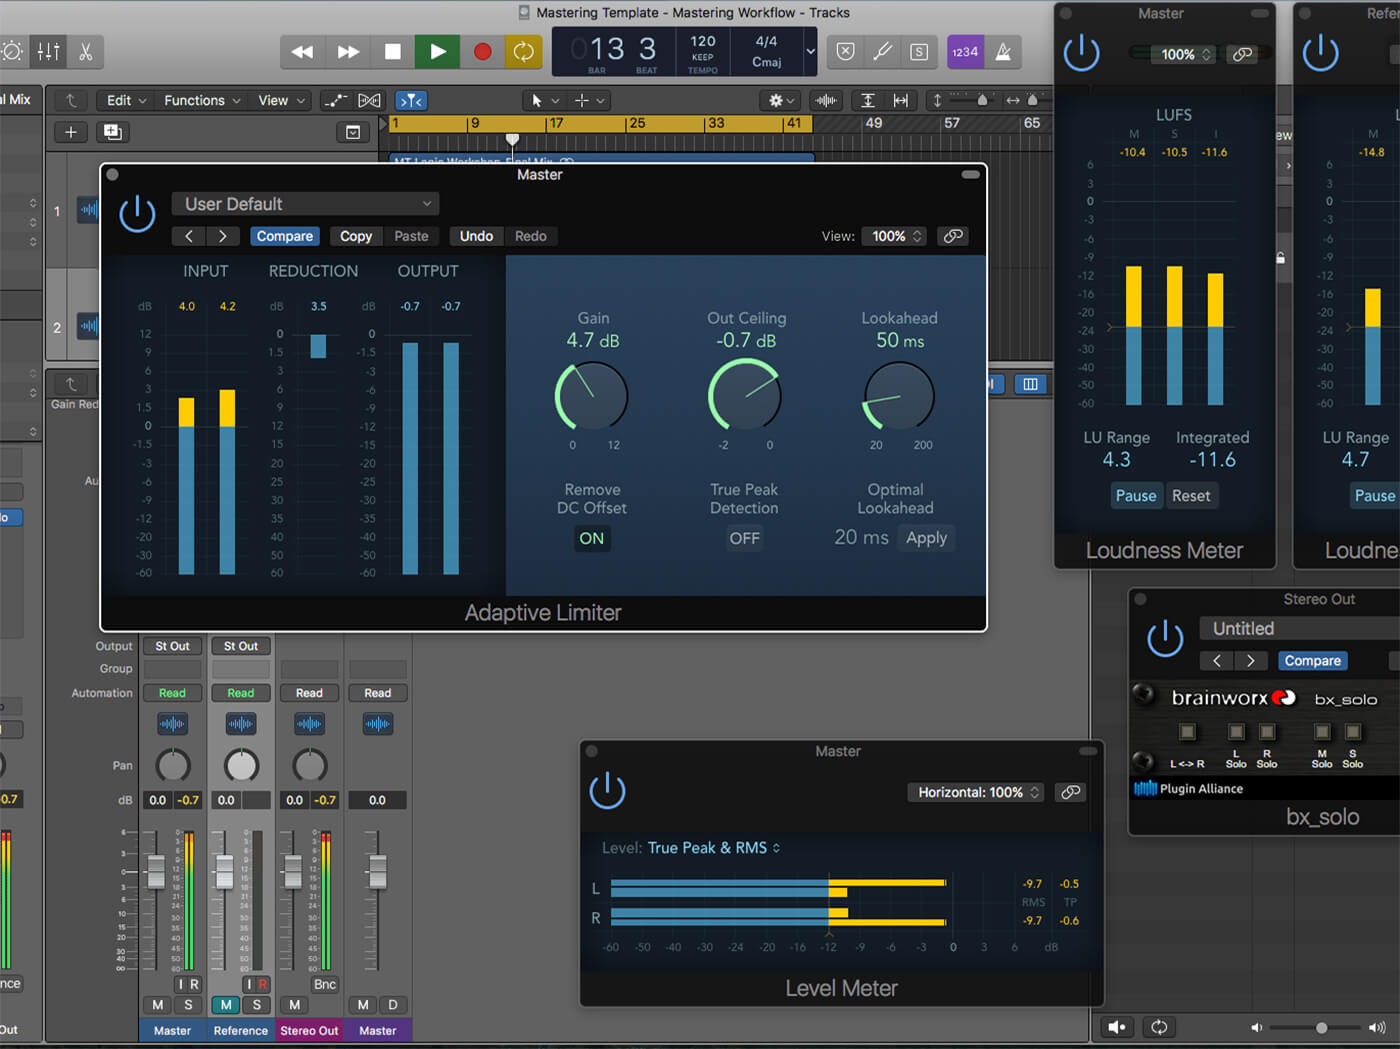 How to develop a professional mastering workflow in Logic